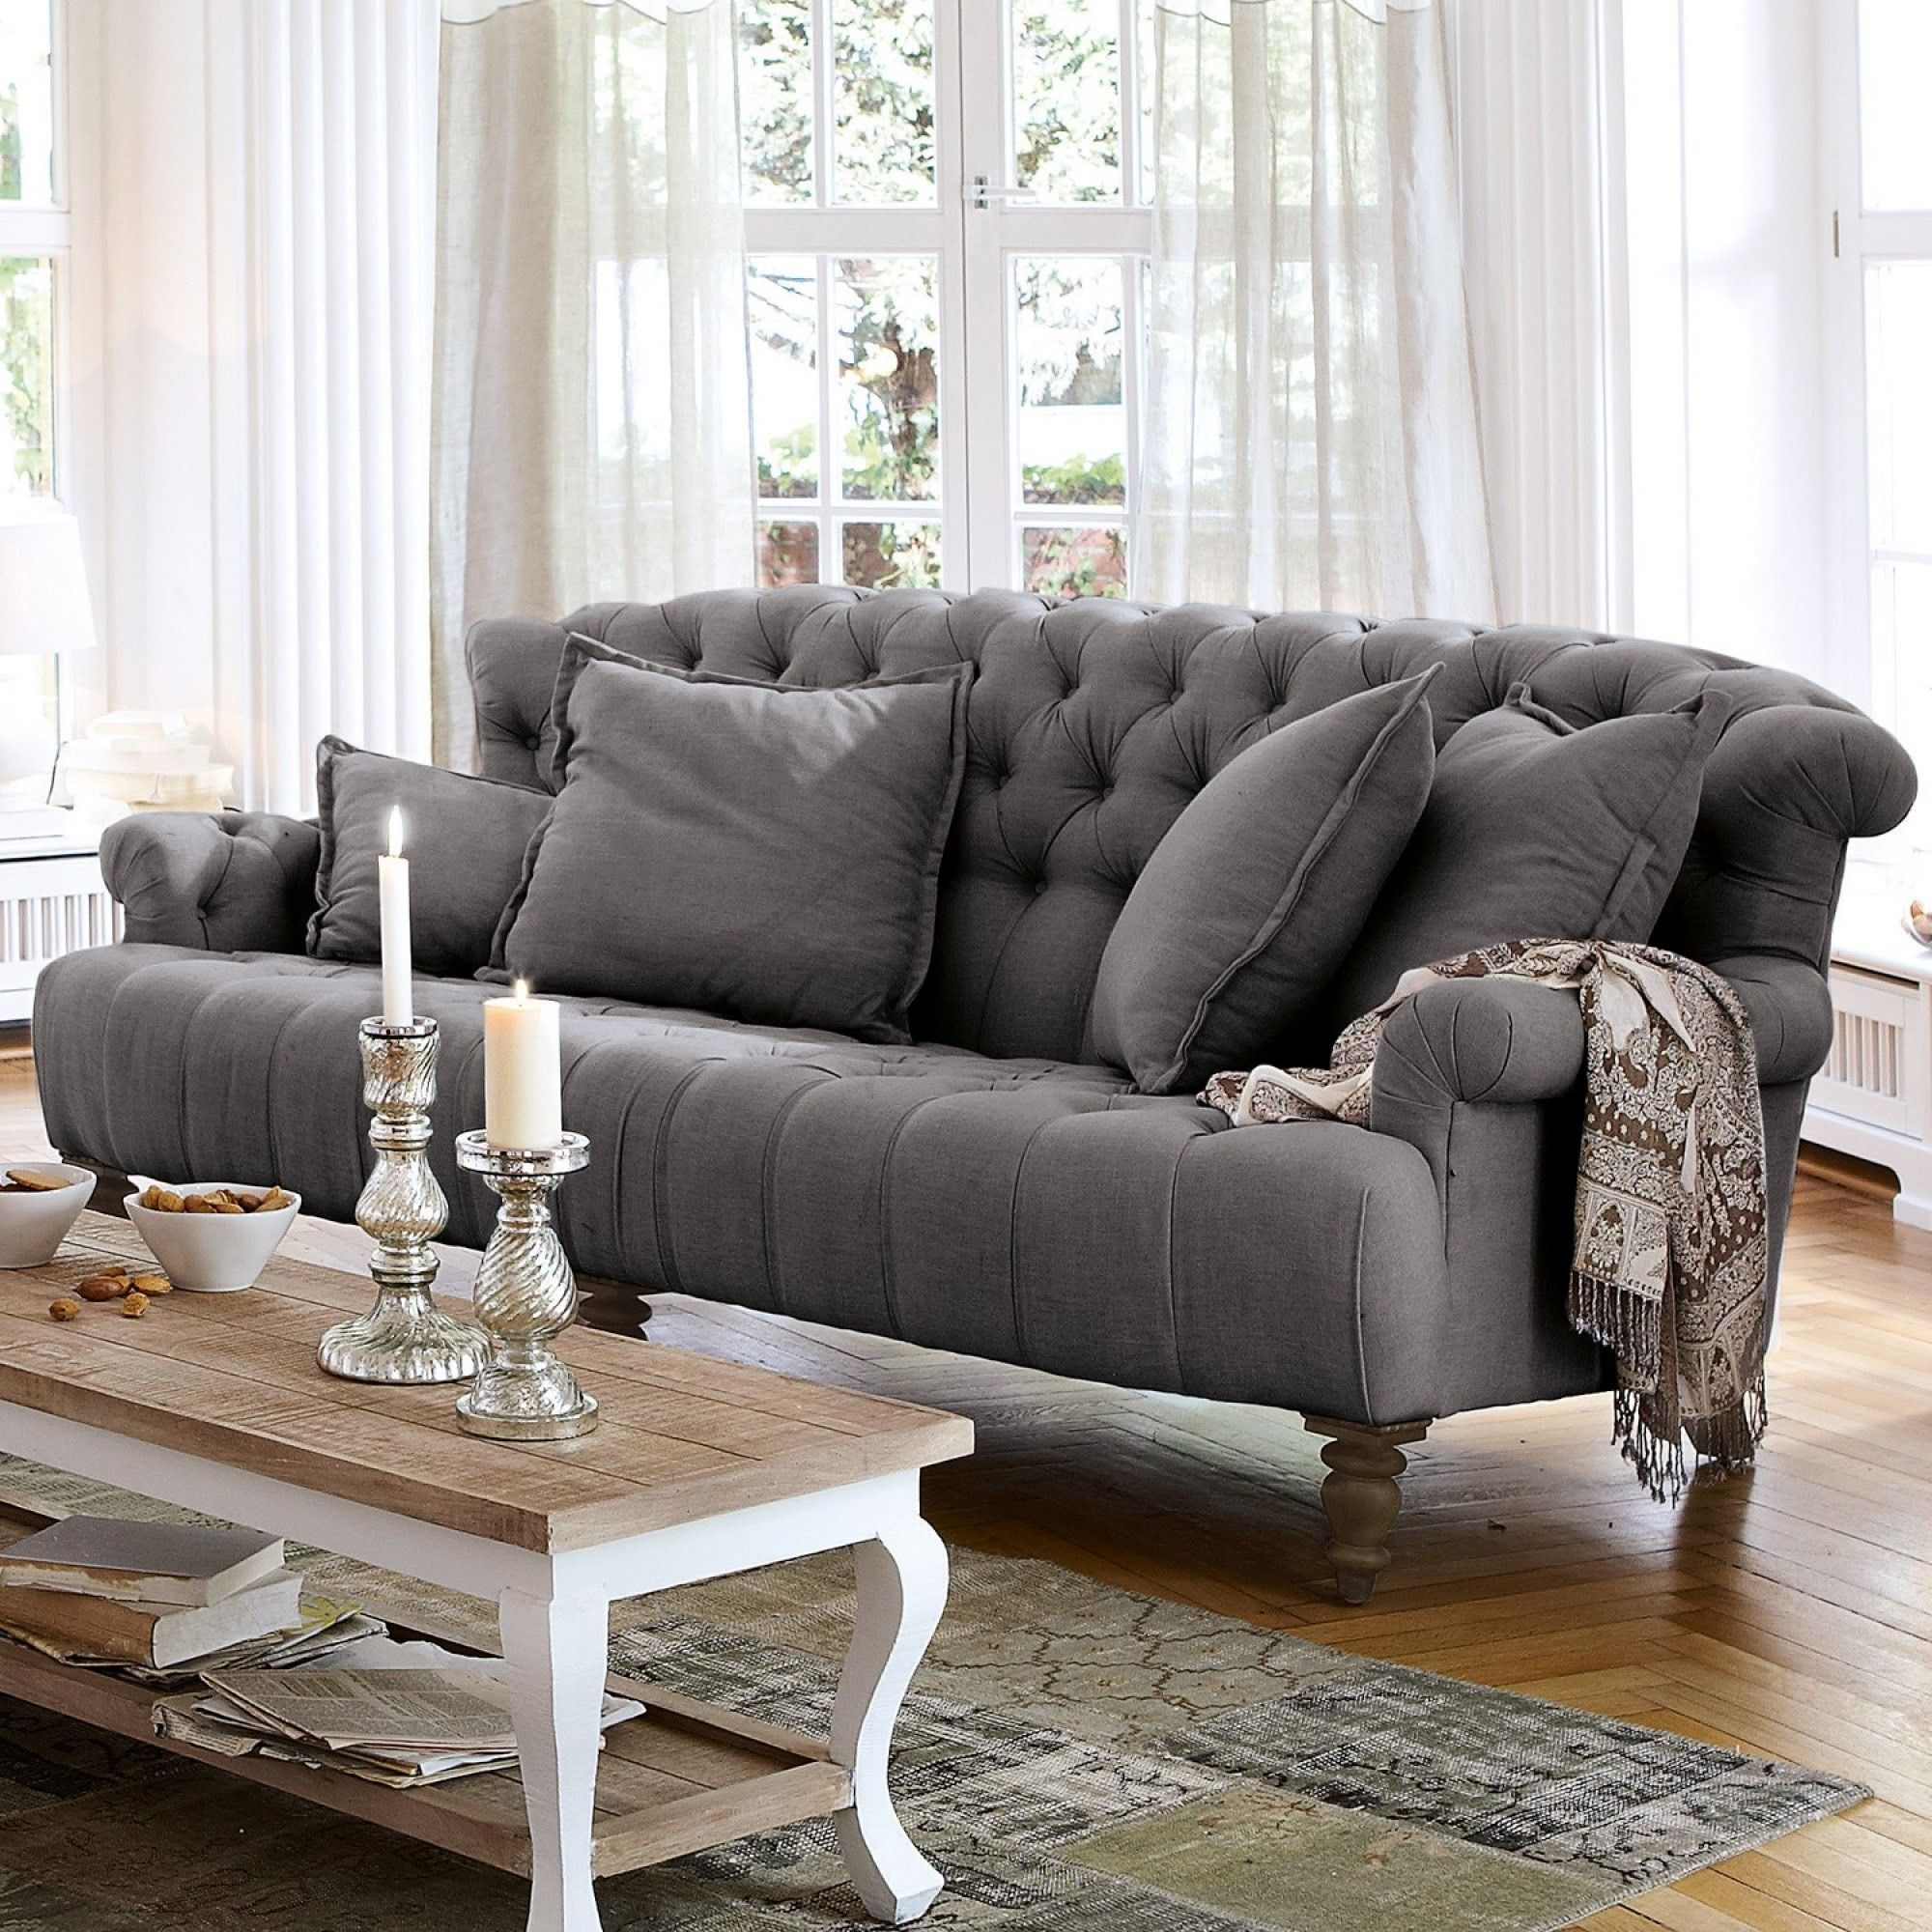 Big Sofa Landhaus Sofa Springfield Village Loberon Furniture Sofa Big